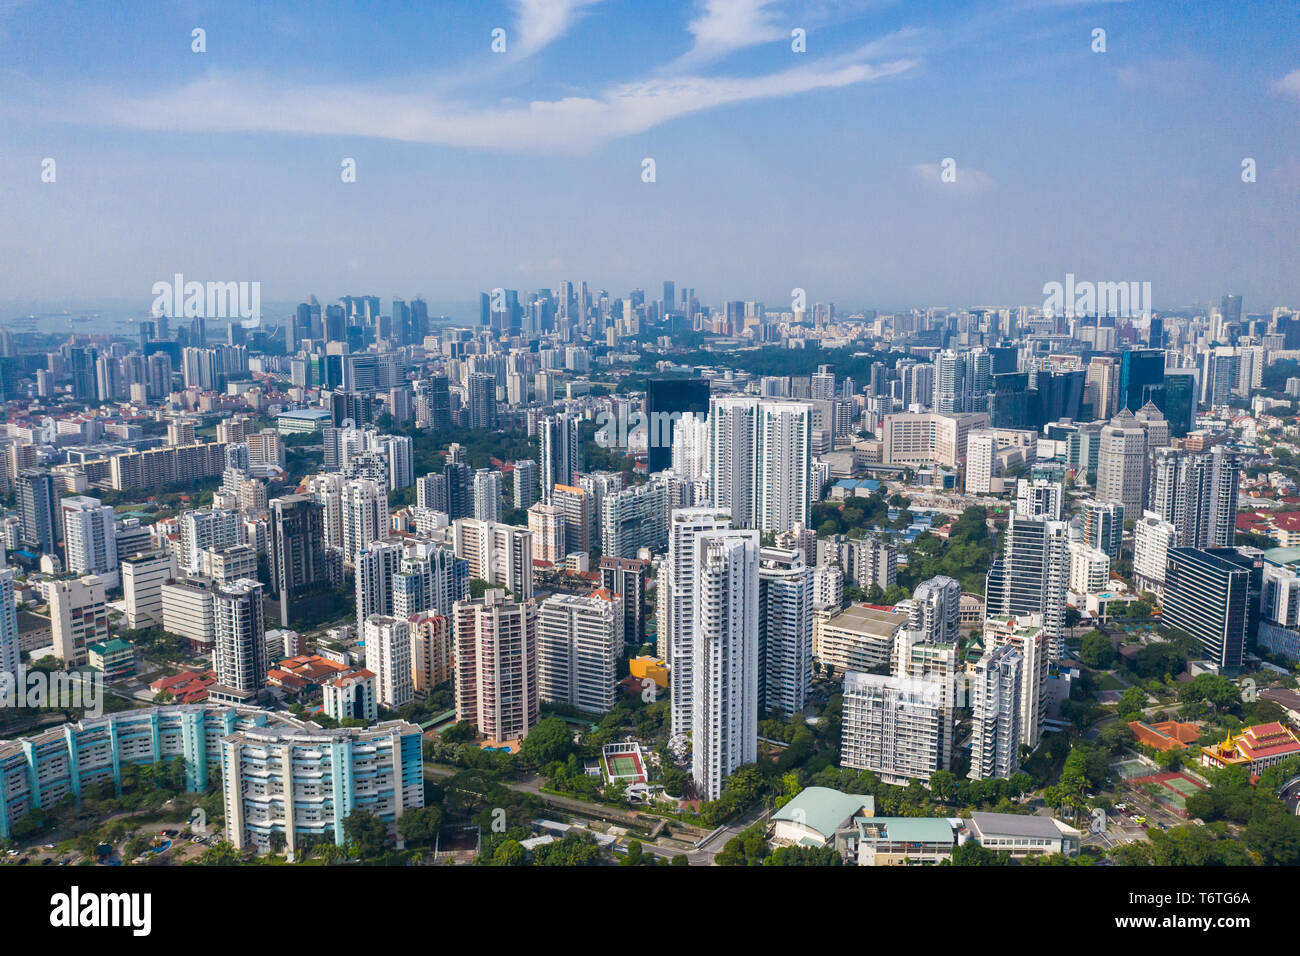 Aerial view of southern Singapore's city from Toa Payoh all the way to the city area in the background. - Stock Image